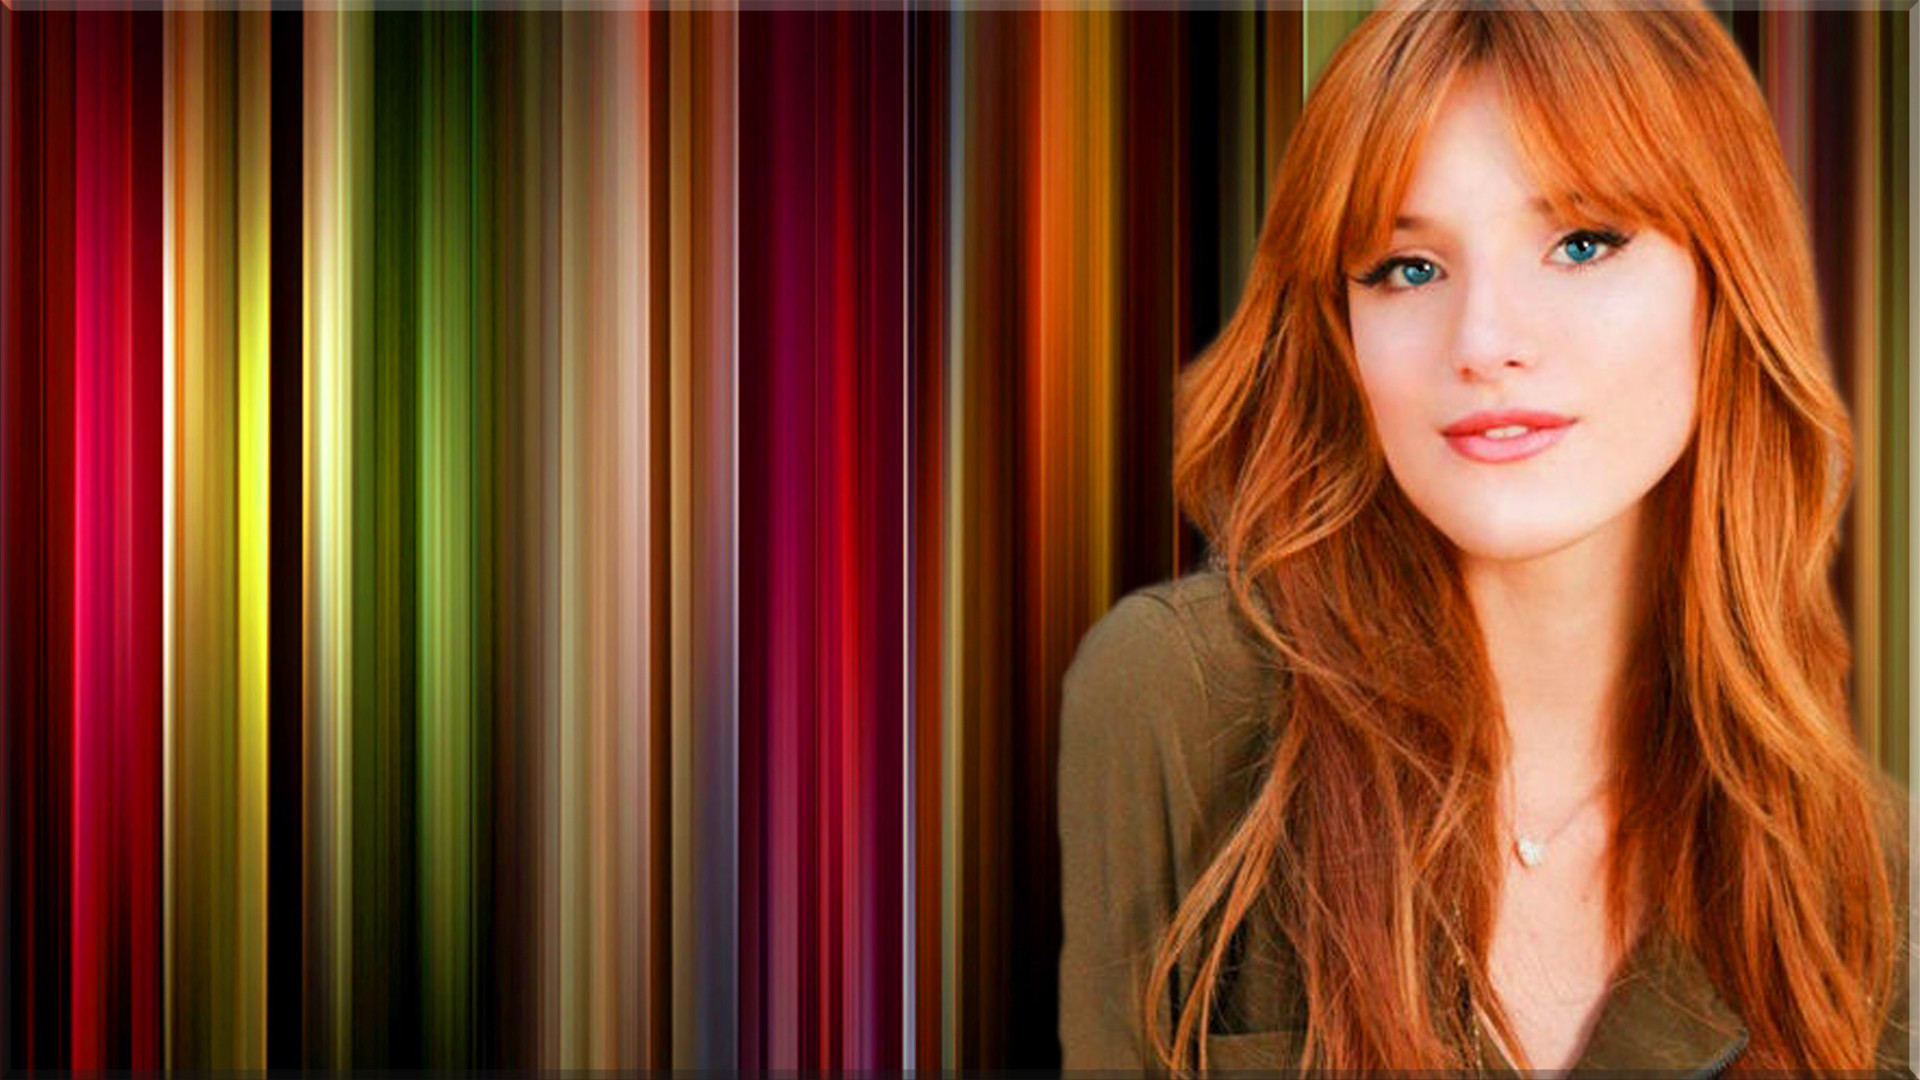 HD Lovely Redhead Wallpapers and Photos, px   By Kimberli Keown